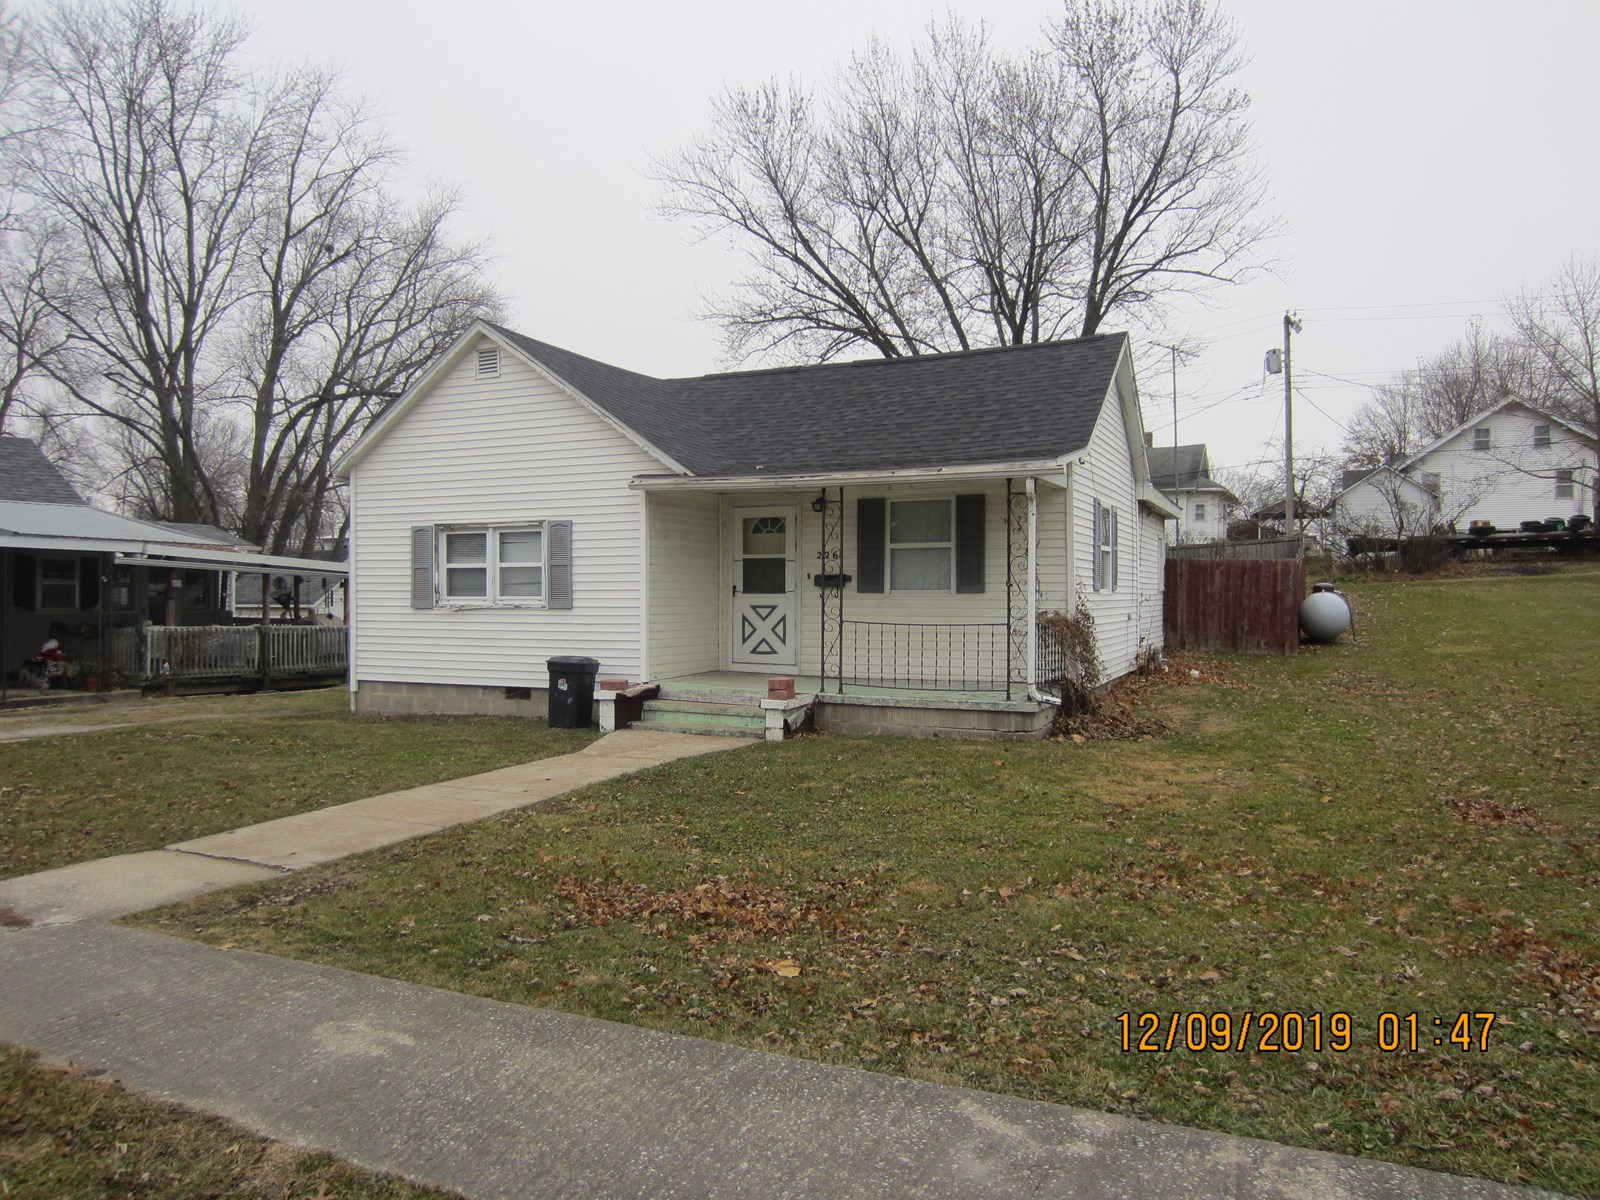 2 Bedroom, 1 Bath Home For Sale in Memphis, MO